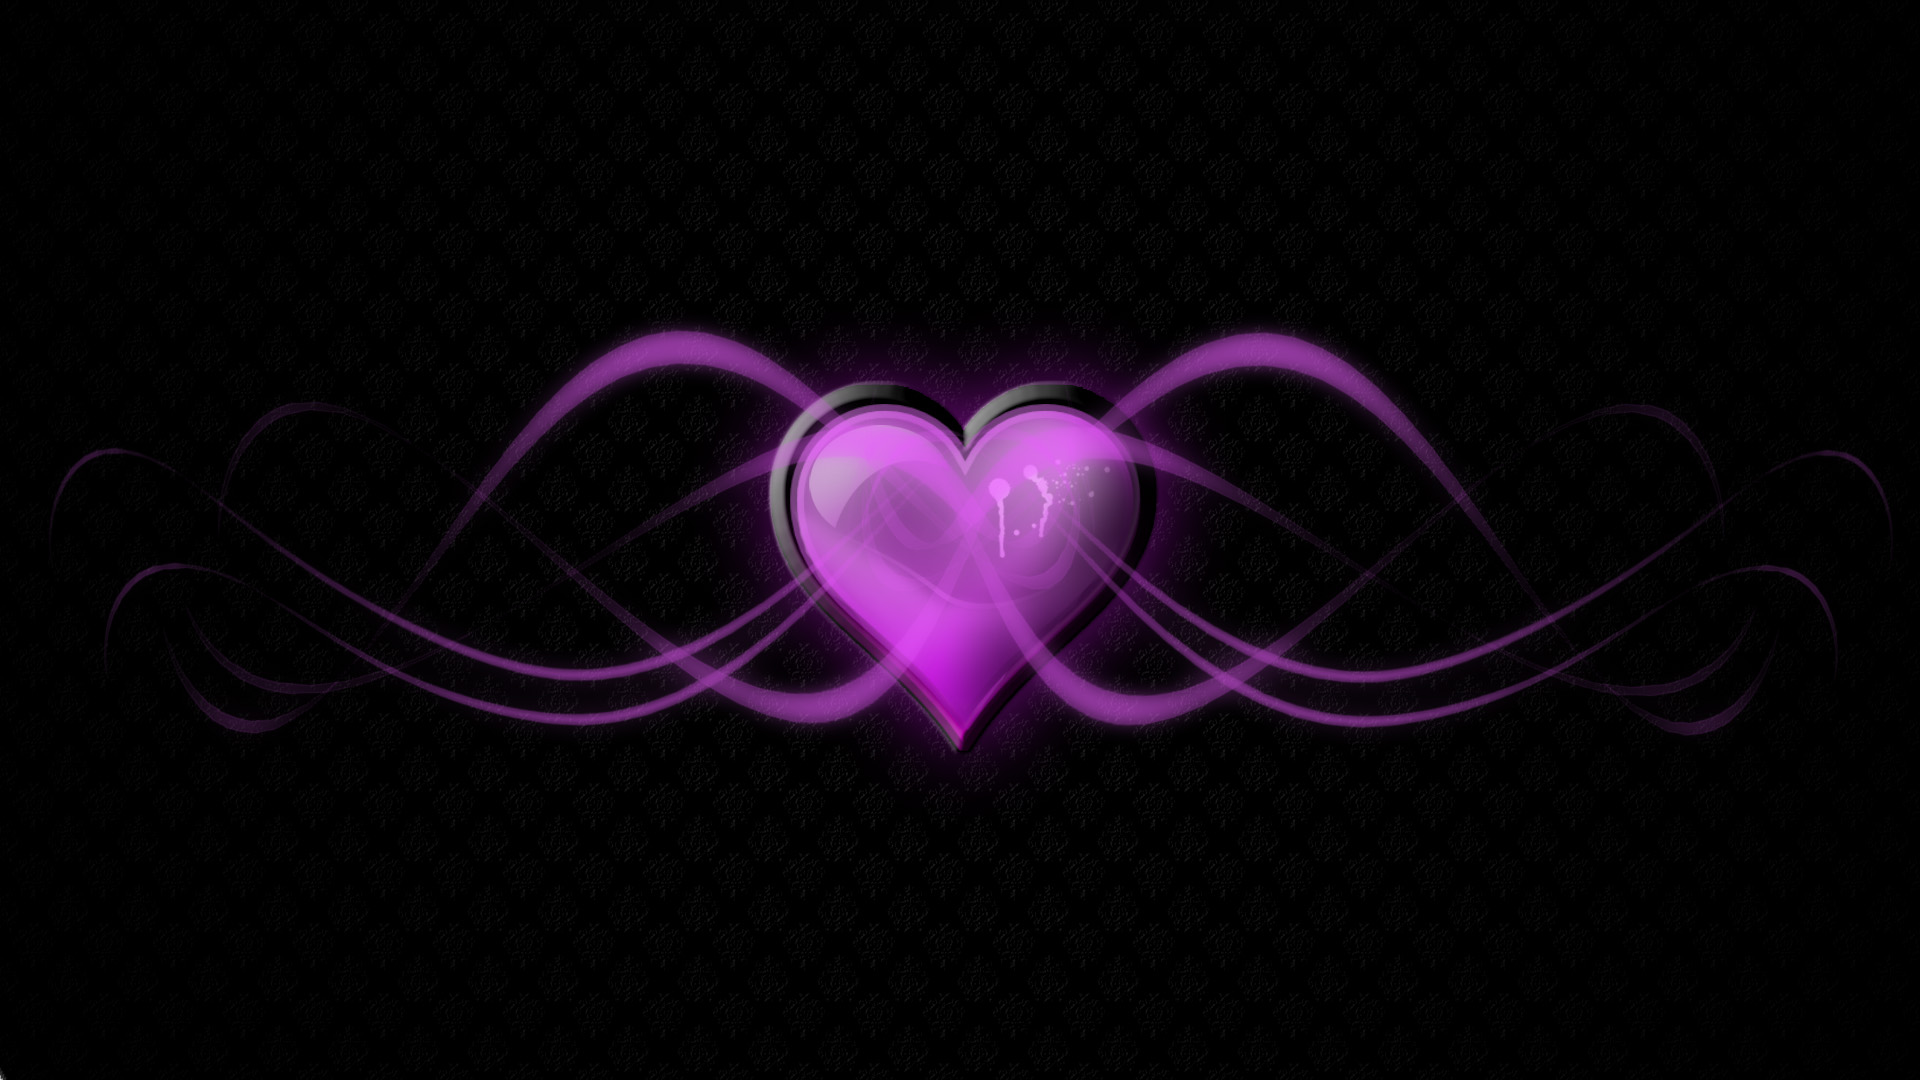 Love Wallpaper With Black Background : Love wallpaper 1920x1080 #38995